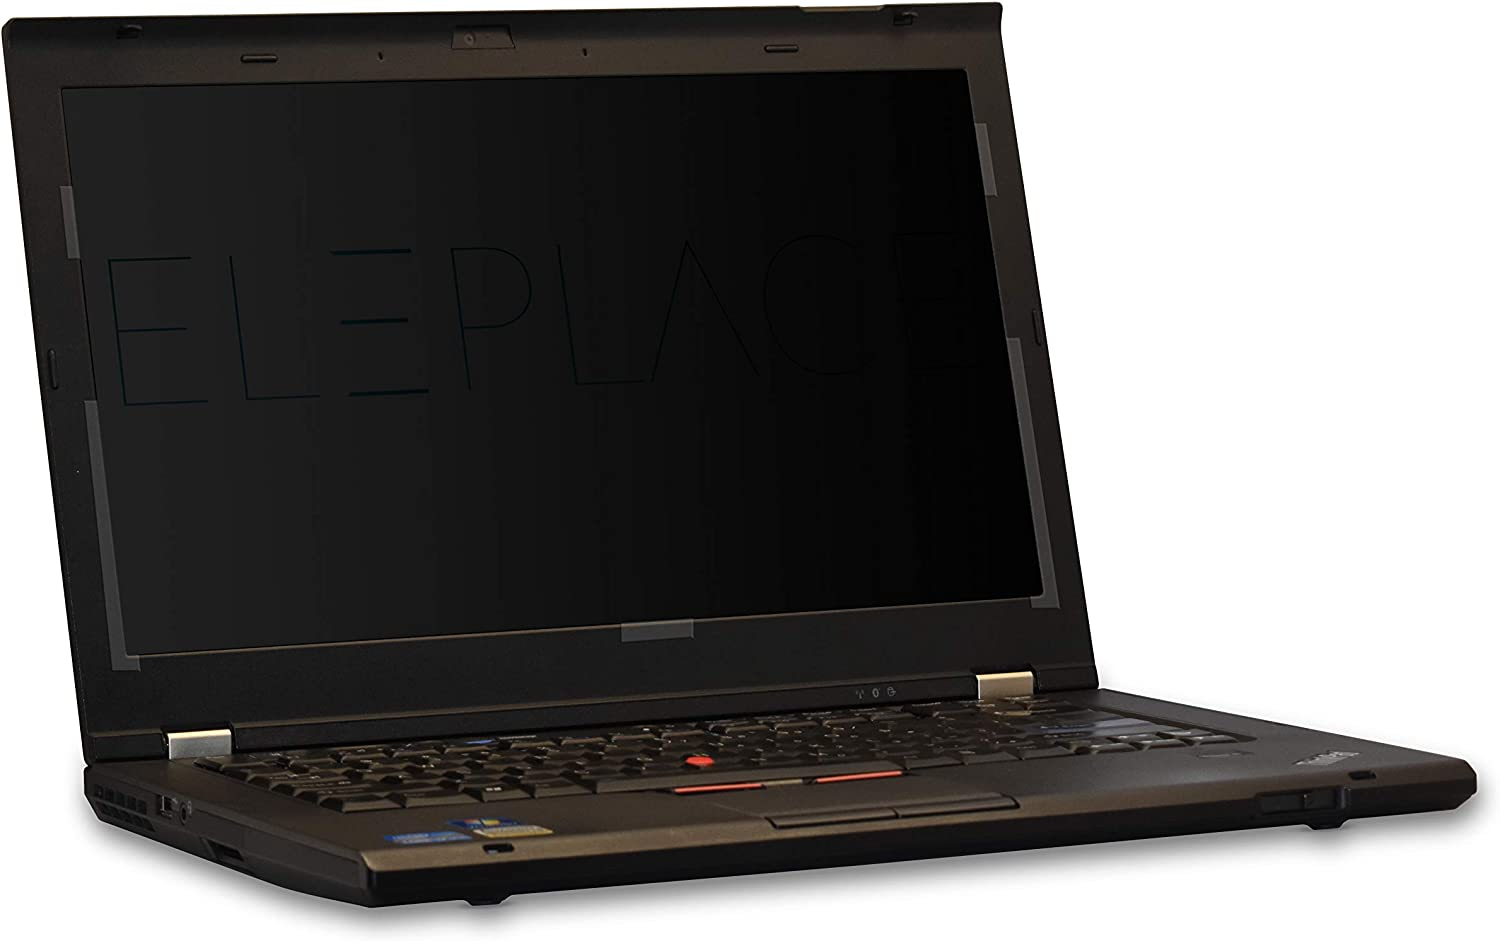 Computer Monitor Eleplace 12.5-Inch Privacy Screen for Widescreen Laptop